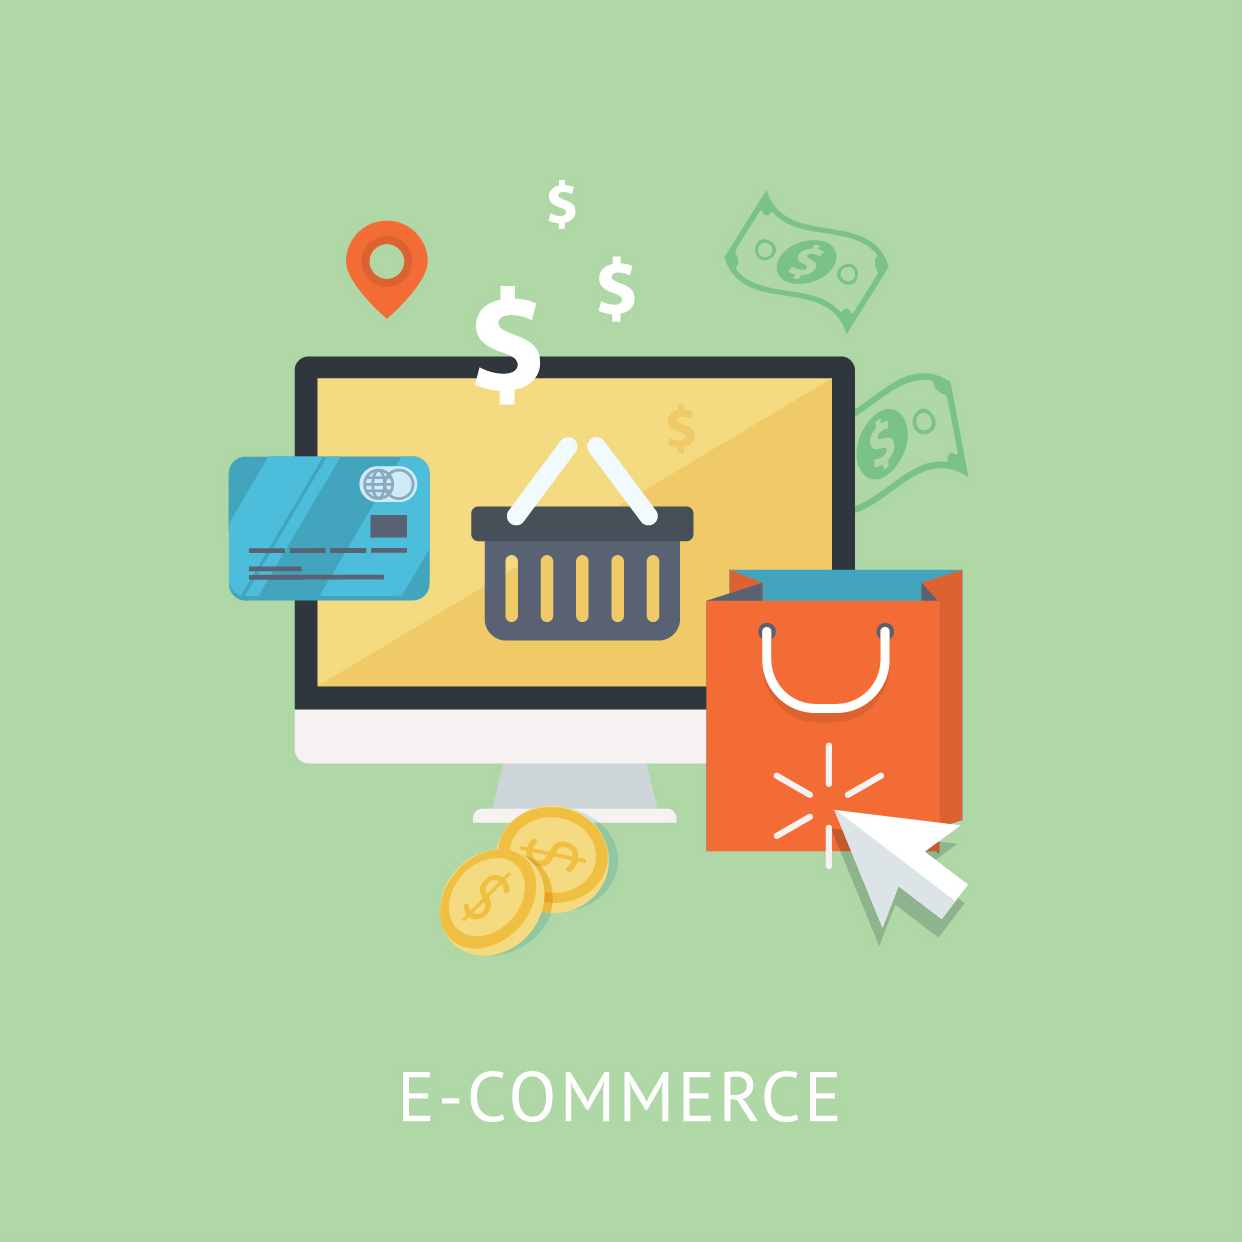 ECOMMERCE BUSINESS OPTIMIZATION